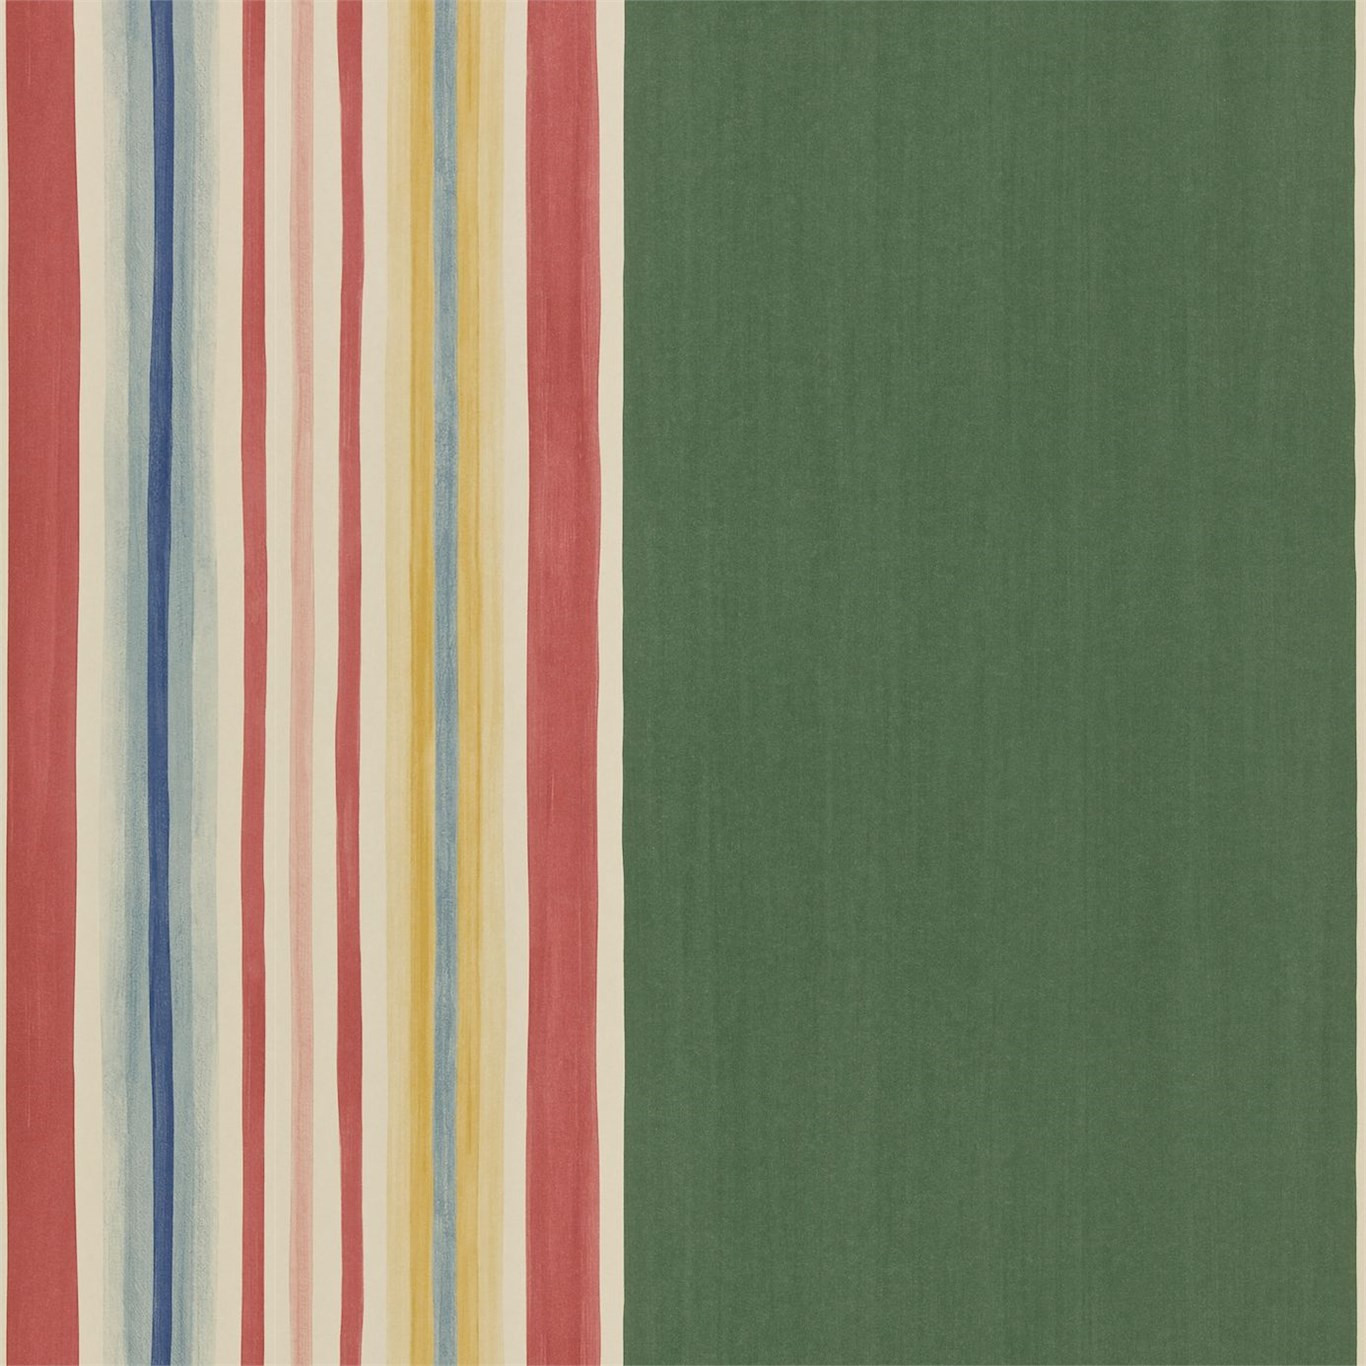 Merchant House Stripe 310461